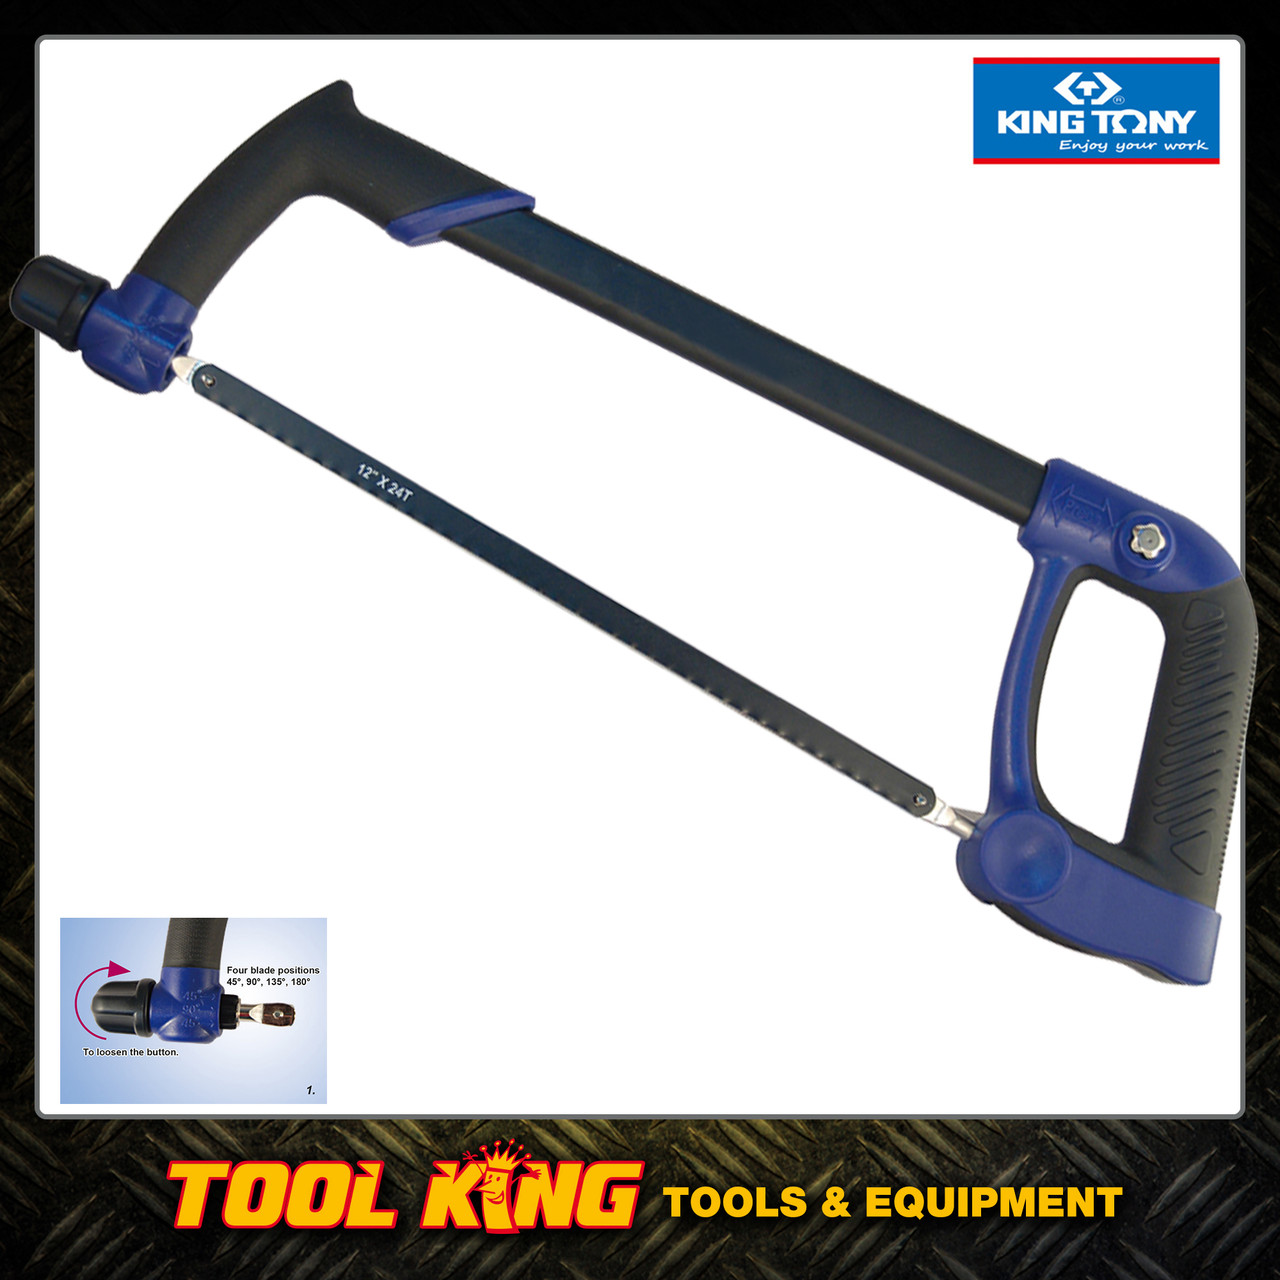 Hacksaw with cushion grip KING TONY Professional